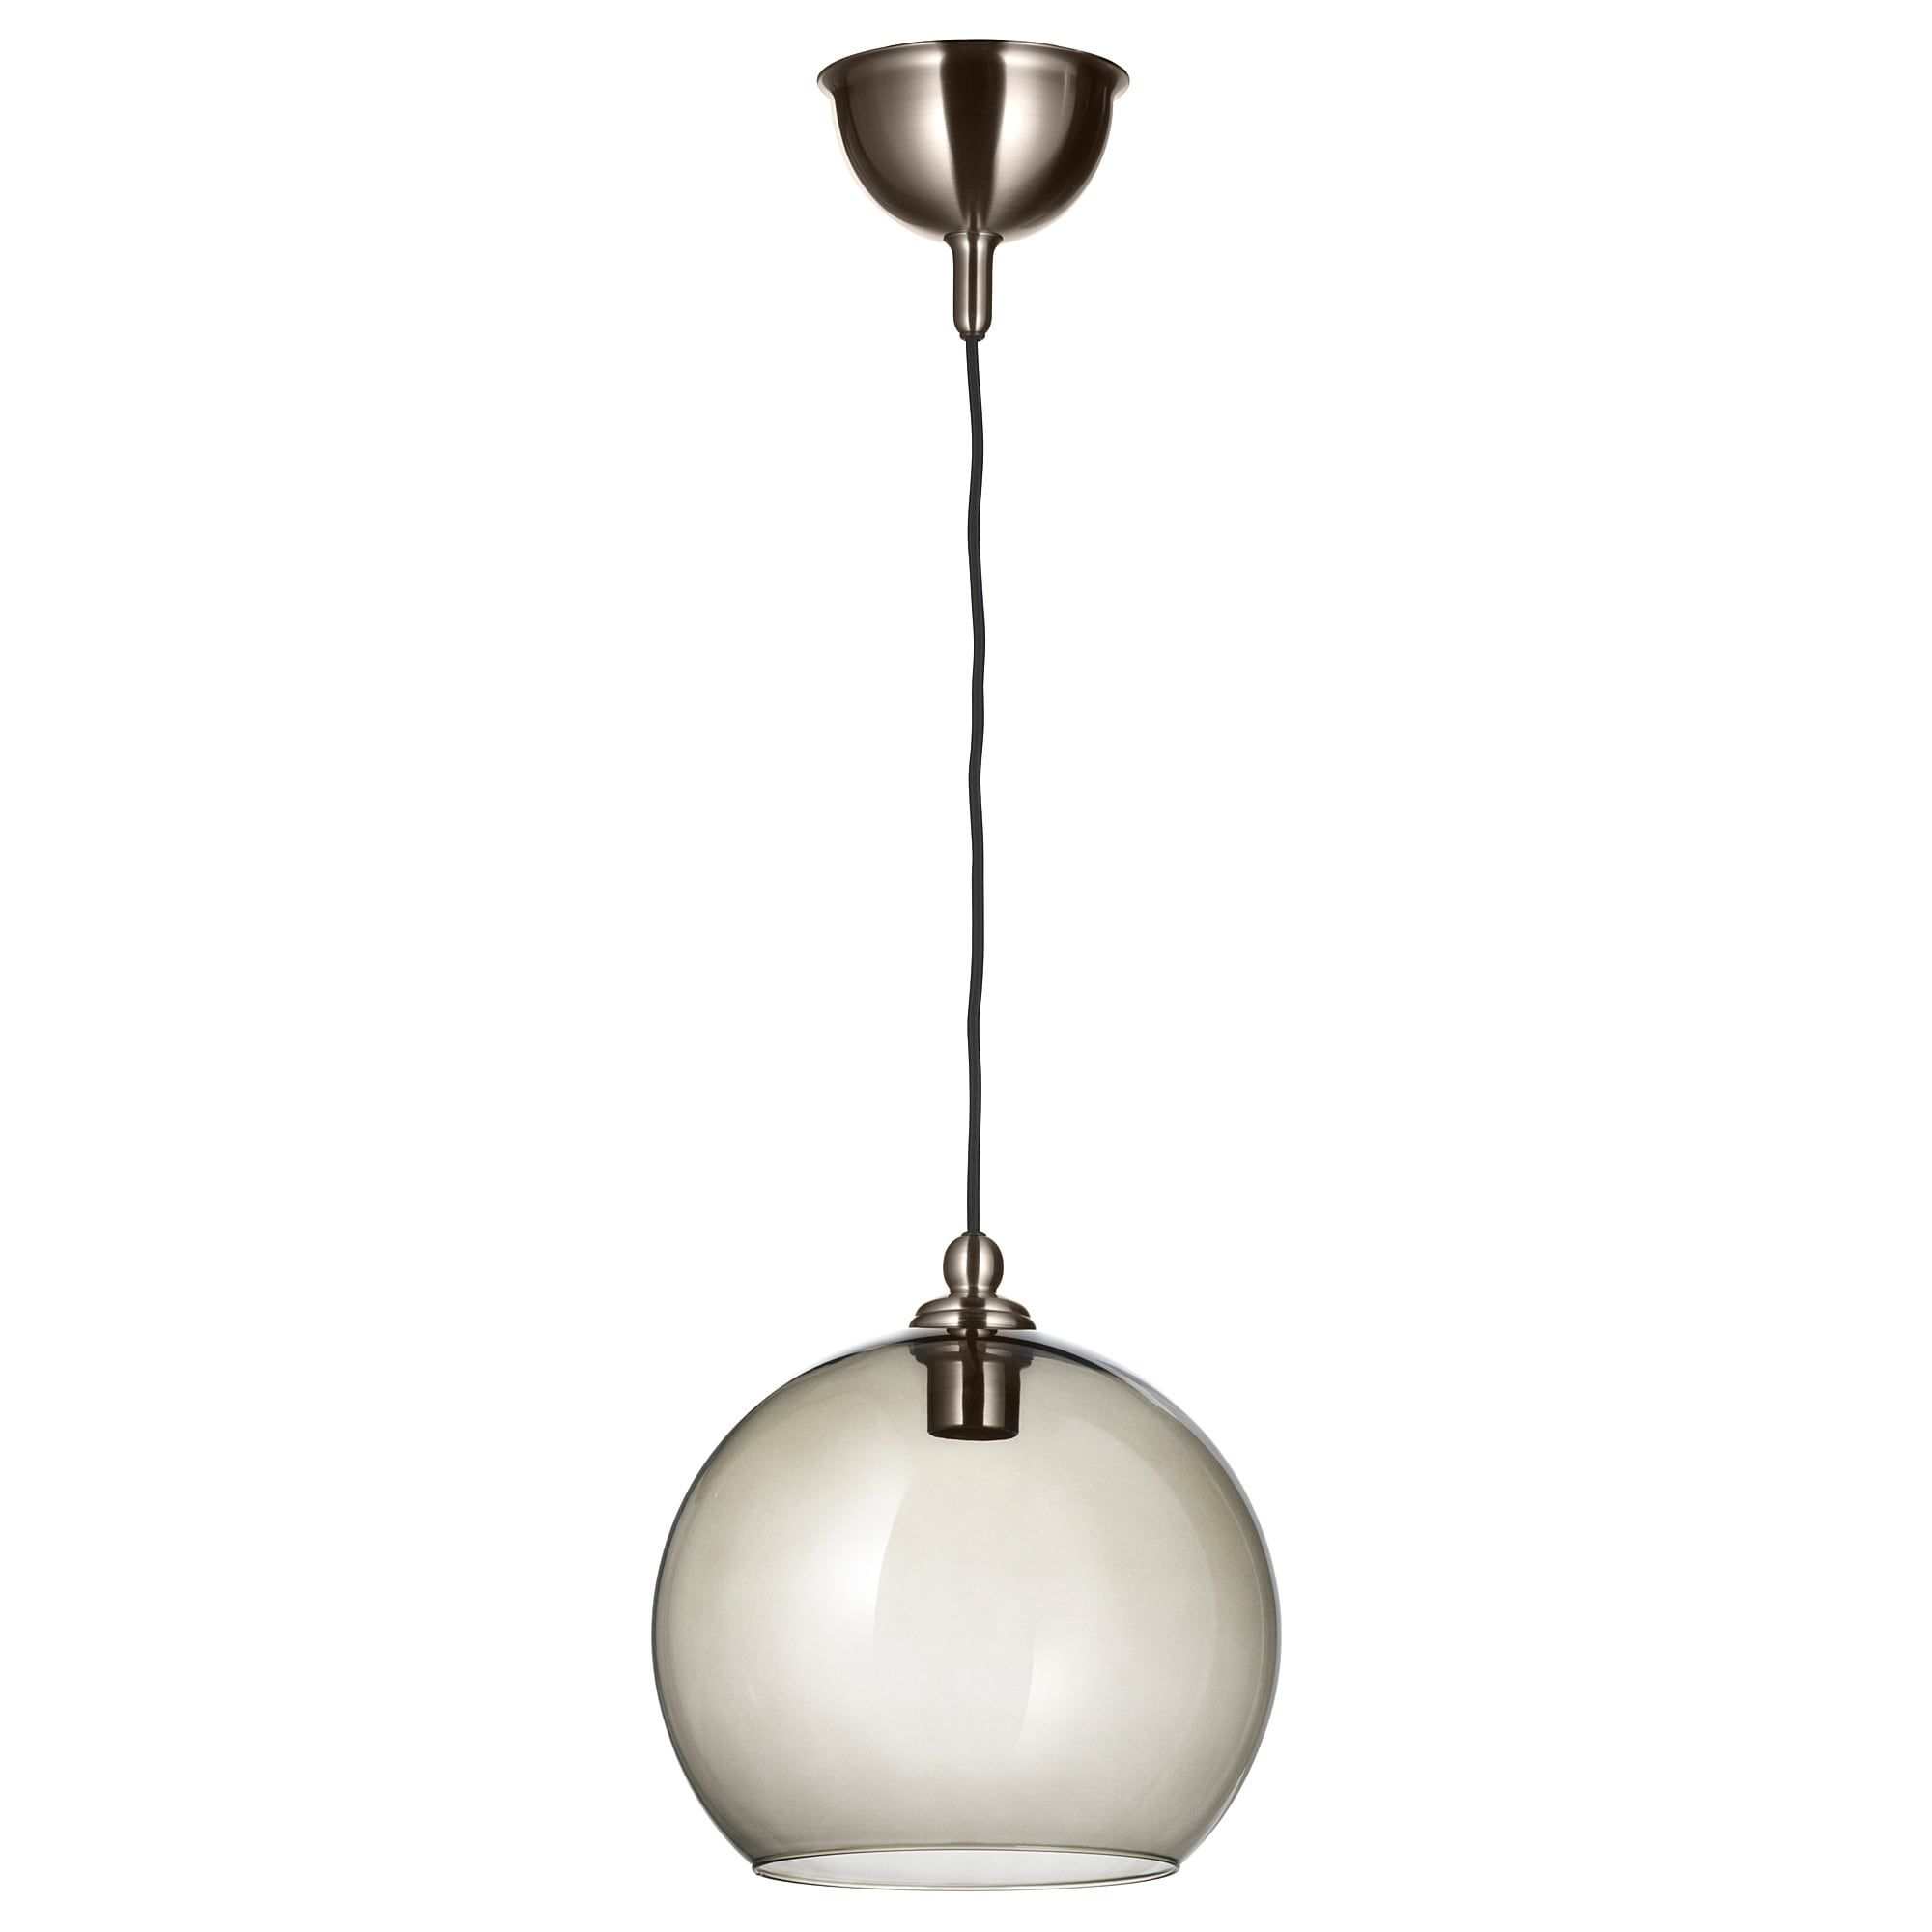 IKEA US Furniture and Home Furnishings | Pendant lamp